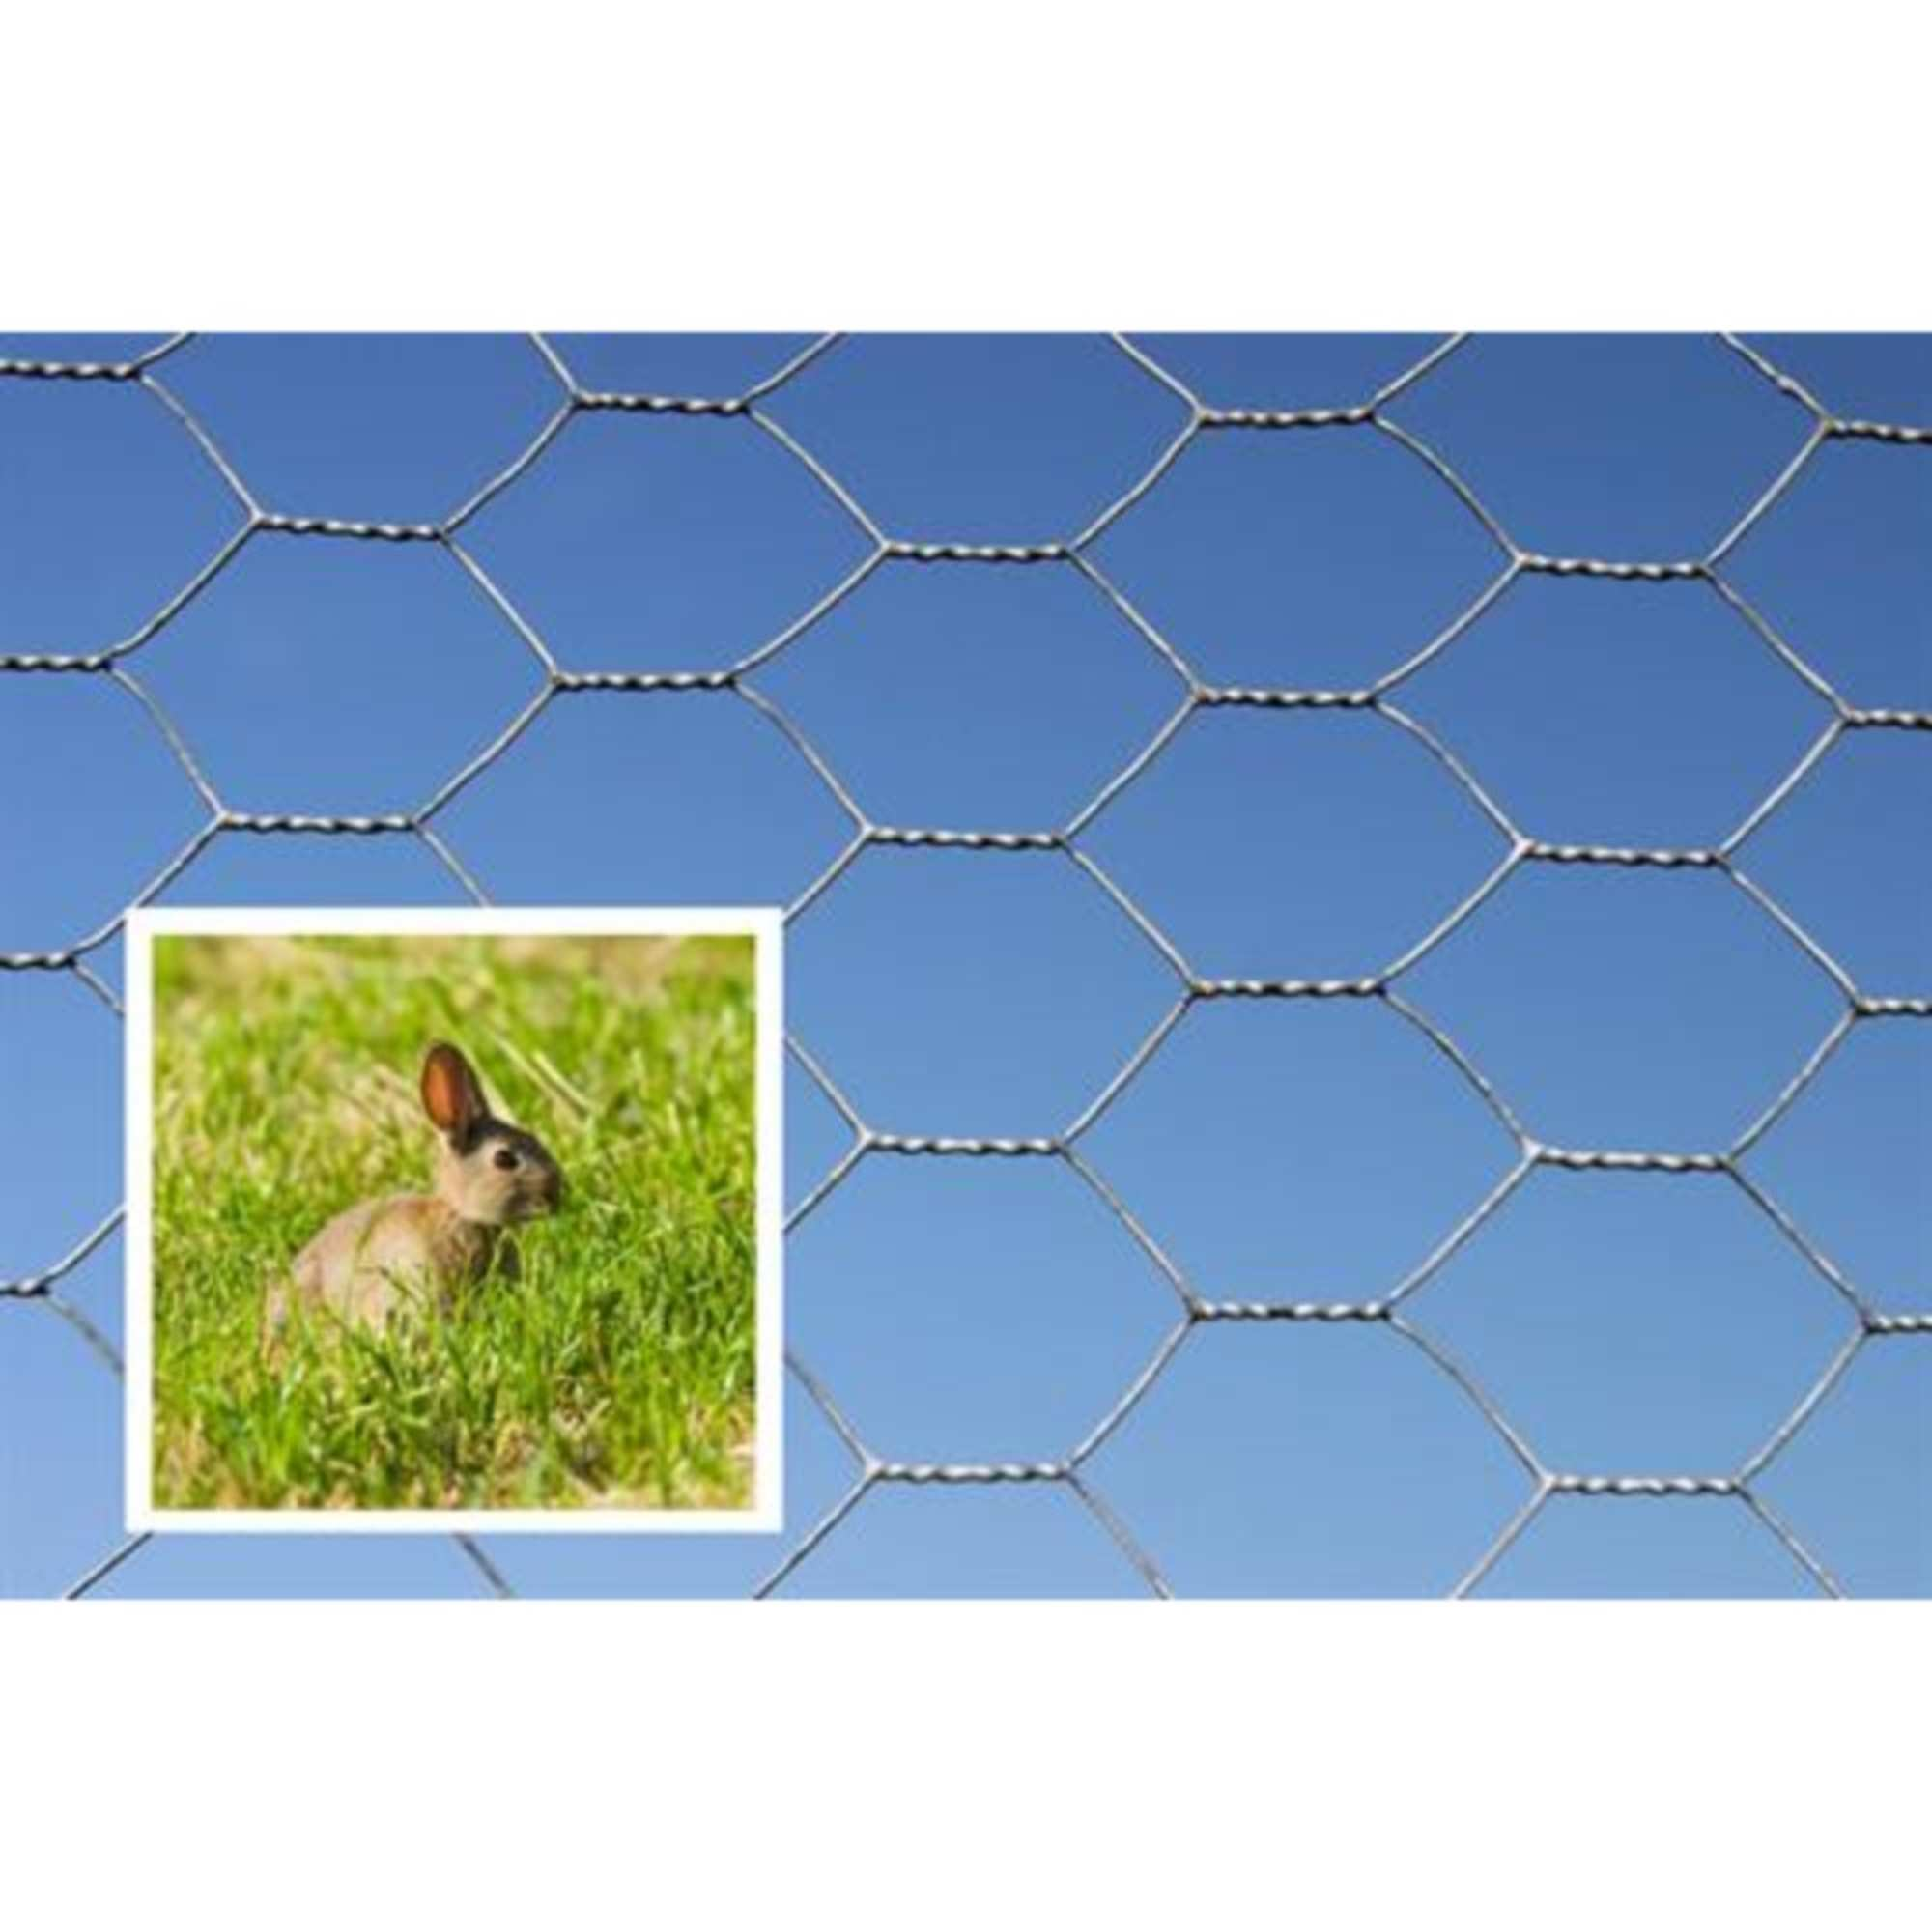 Rabbit Netting Fence - Agricultural Fencing | Green-tech